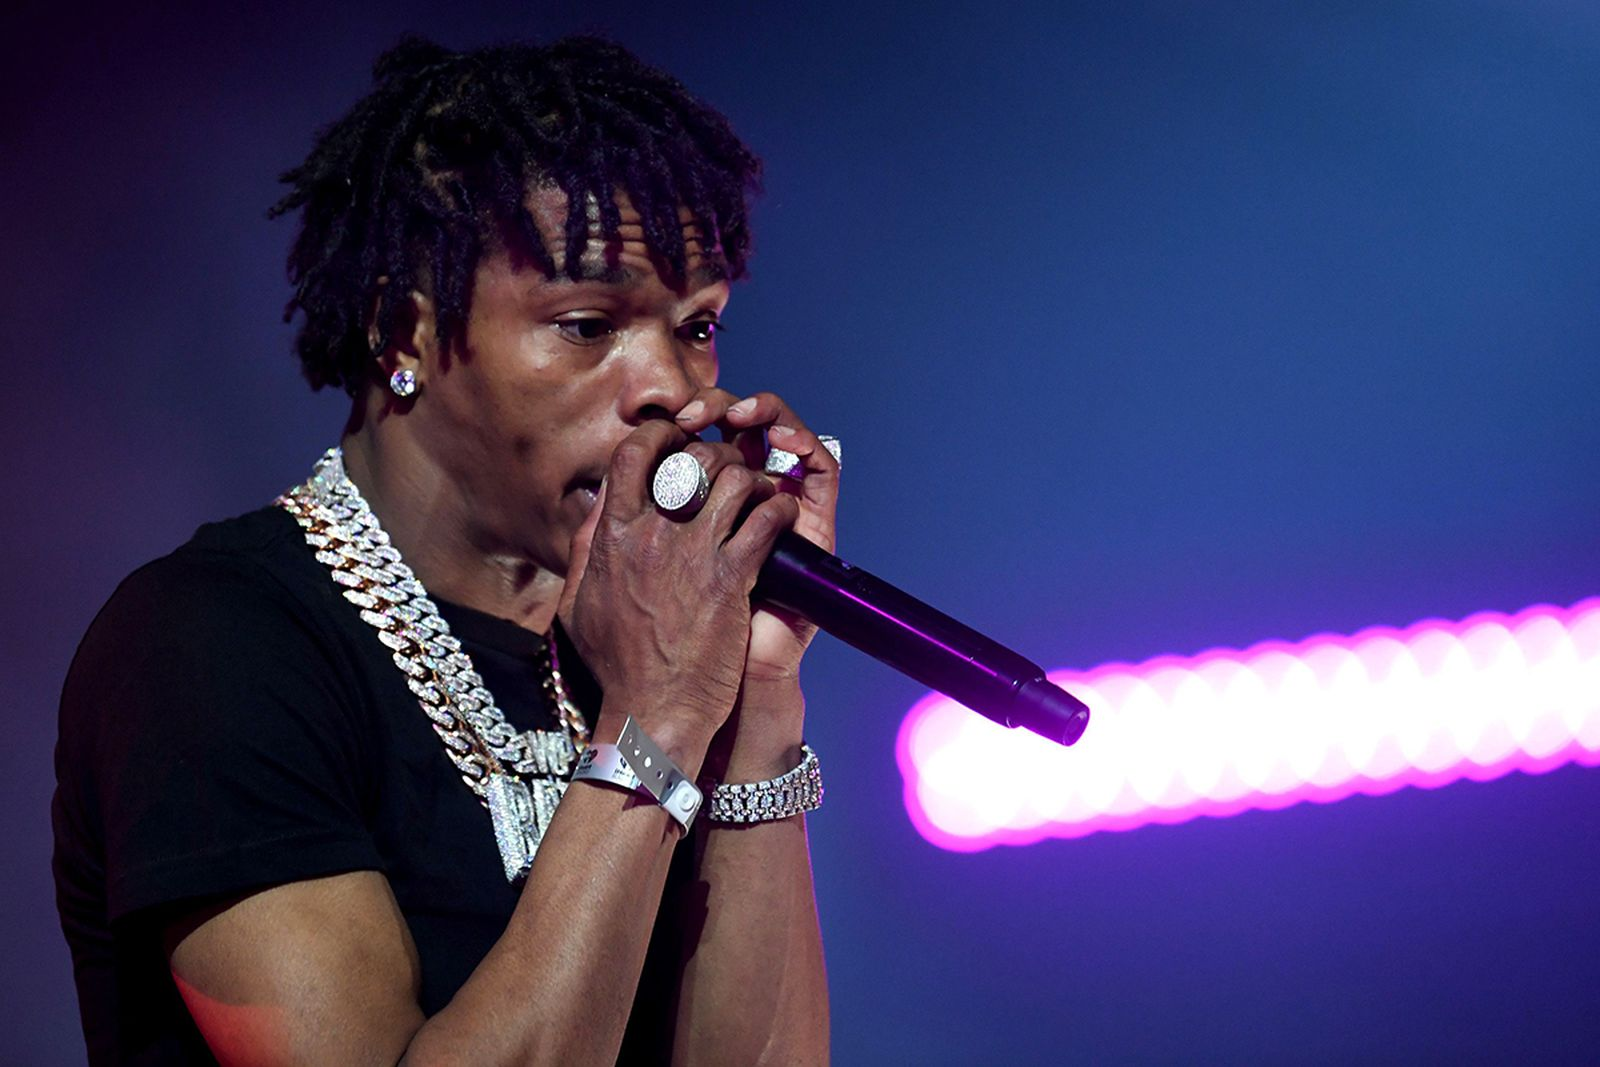 Lil Baby performing